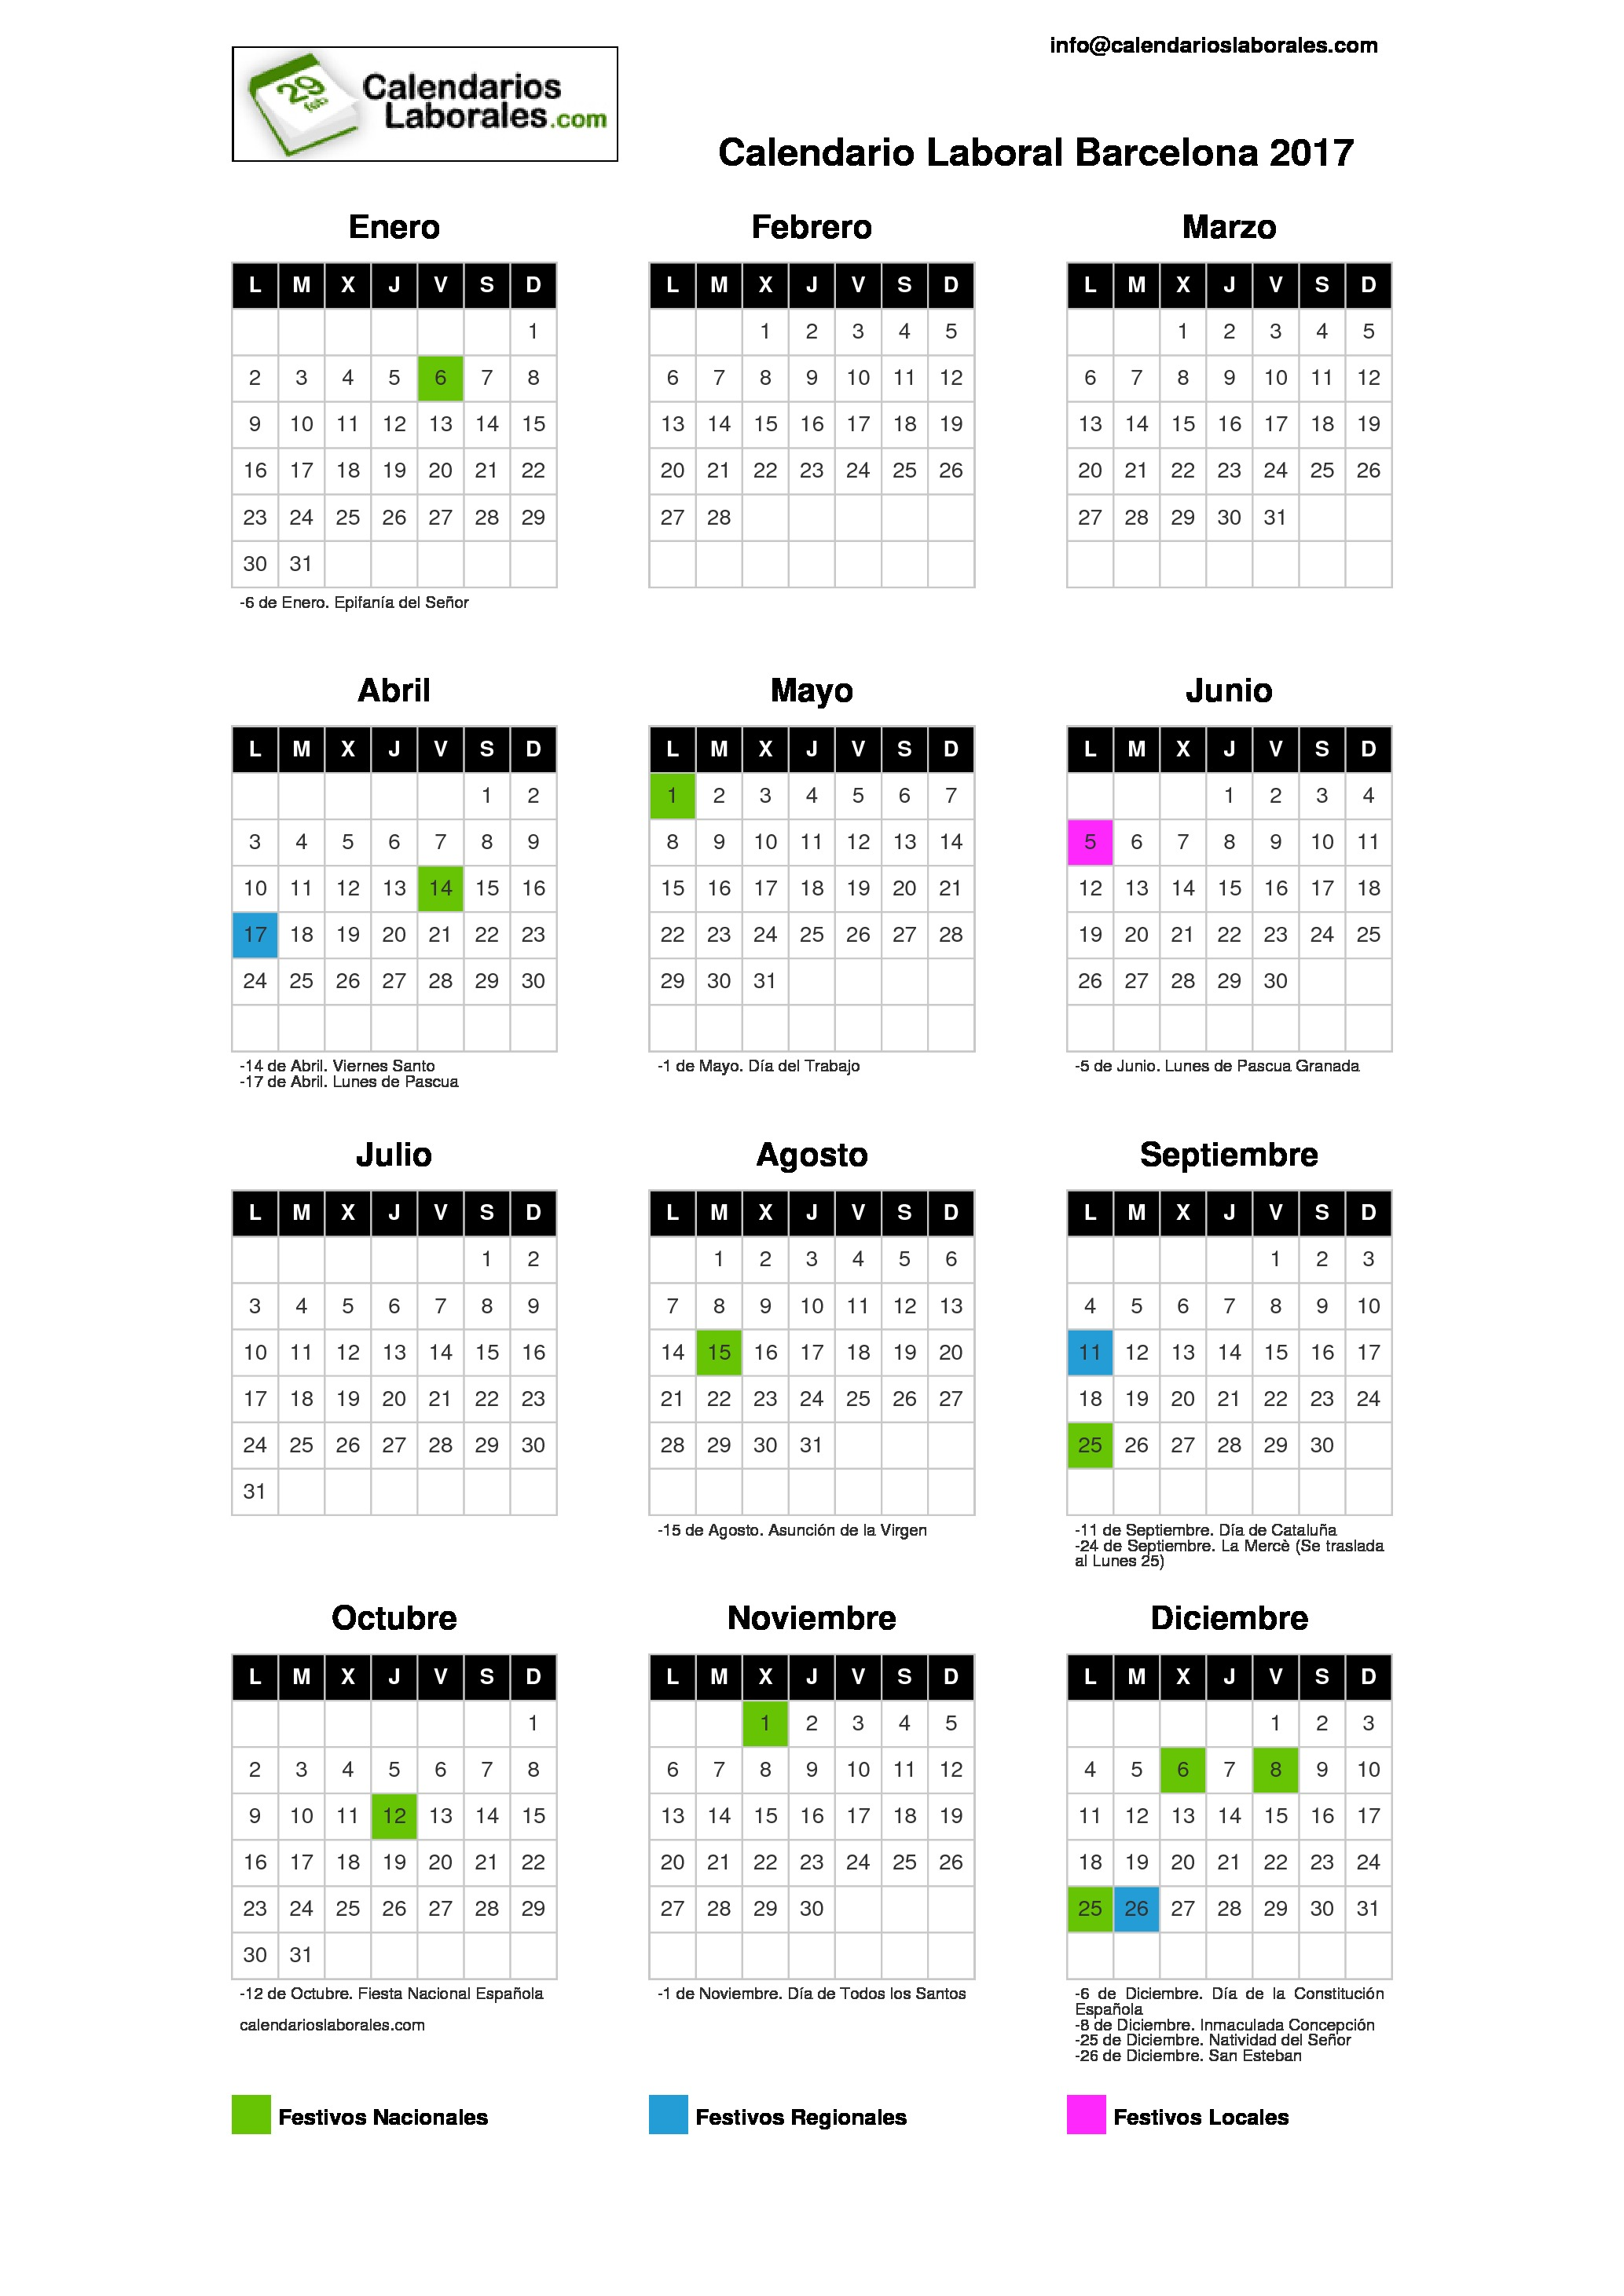 Calendario Laboral Barcelona 2017